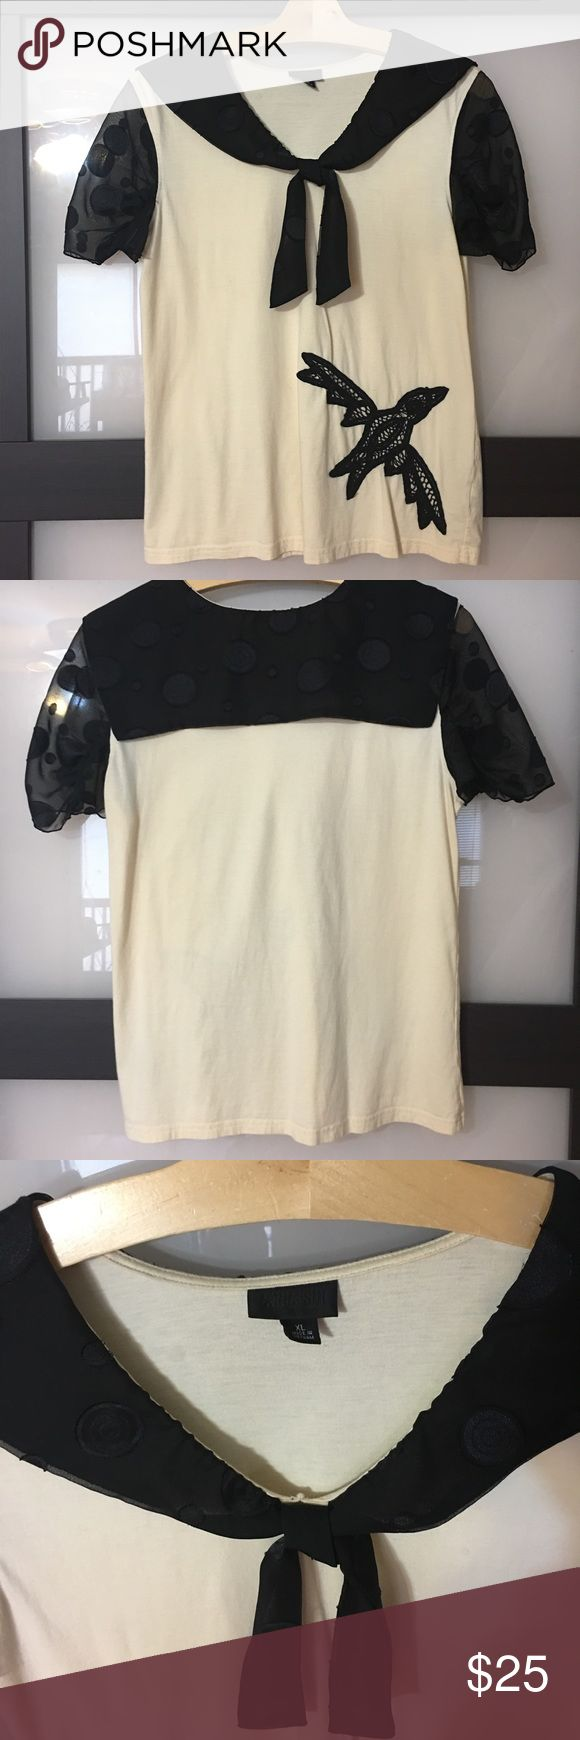 Anna Sui Top Anna Sui Top.  Color cream & black.   Size XL. Top is in good condition. Anna Sui Tops